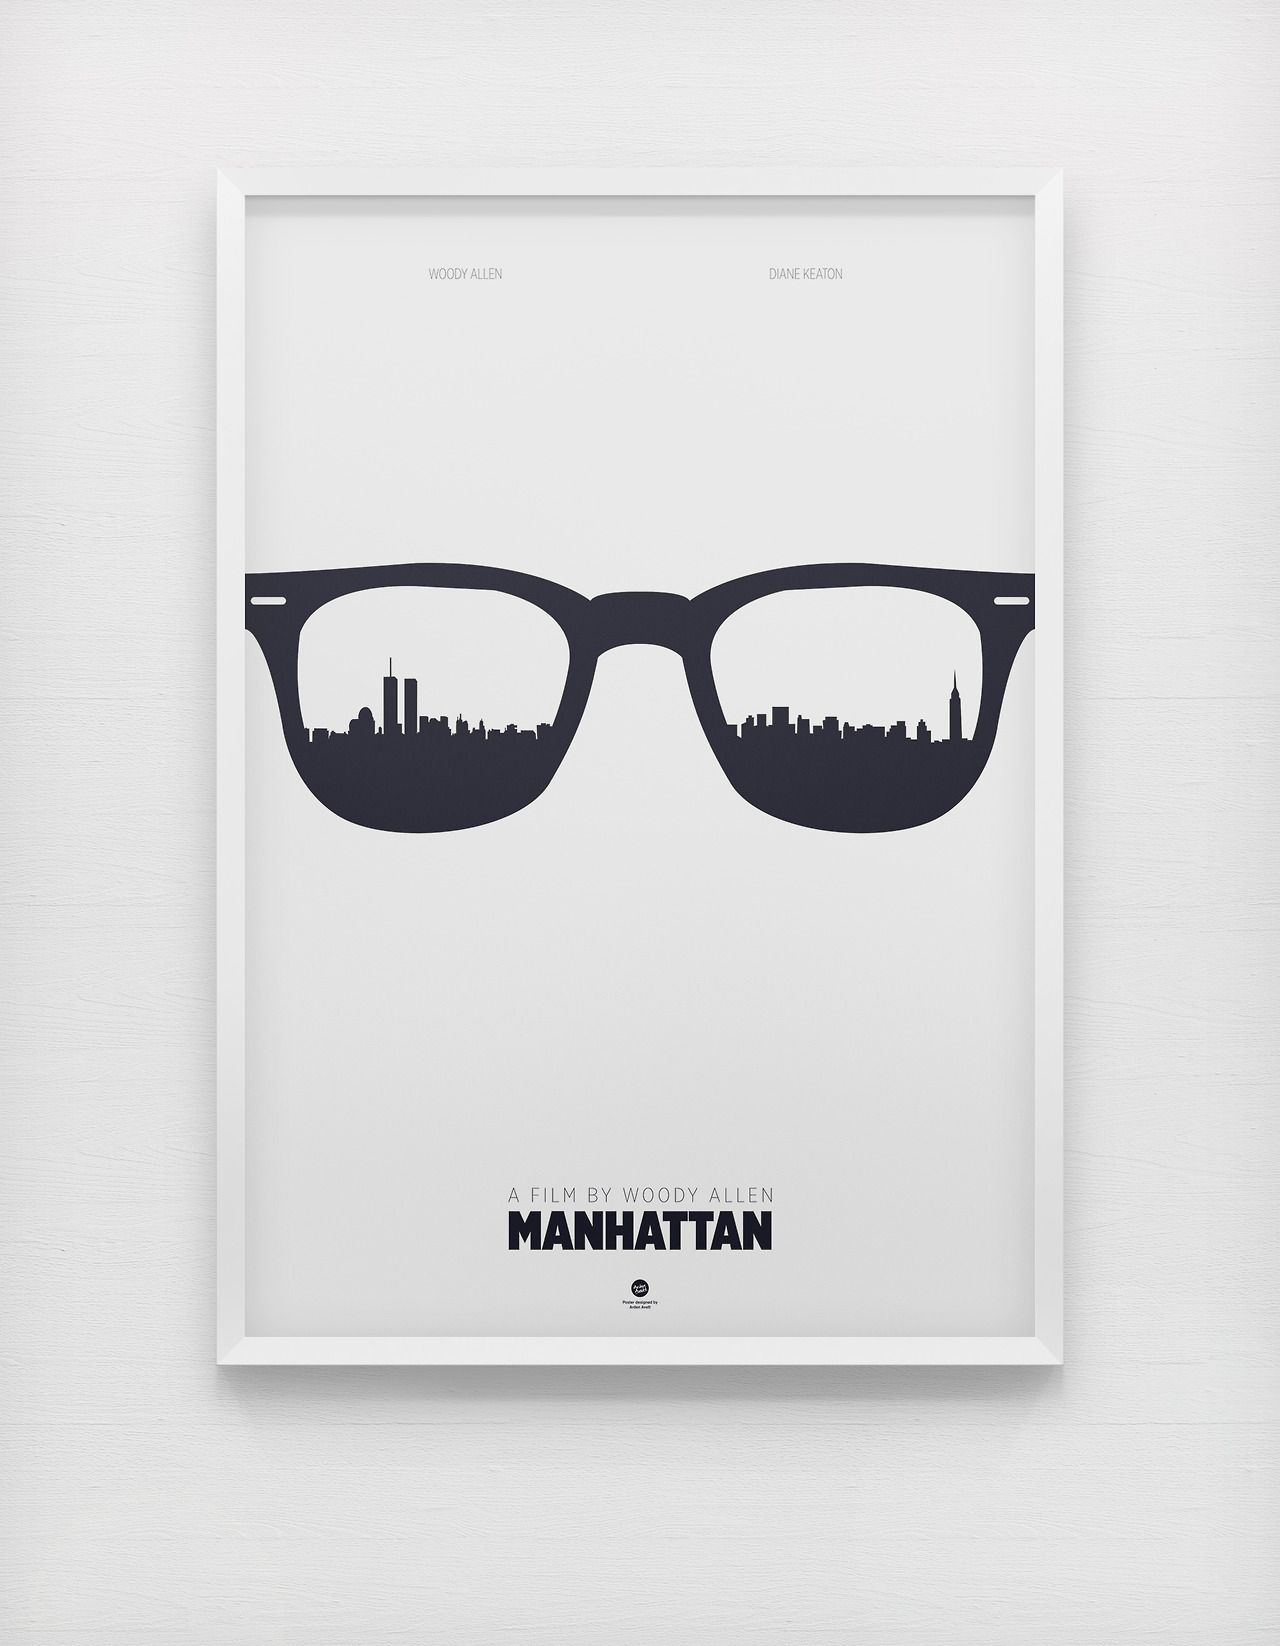 Graphic design inspiration | Design inspiration, Inspiration and ... for Simple Poster Design Inspiration  195sfw